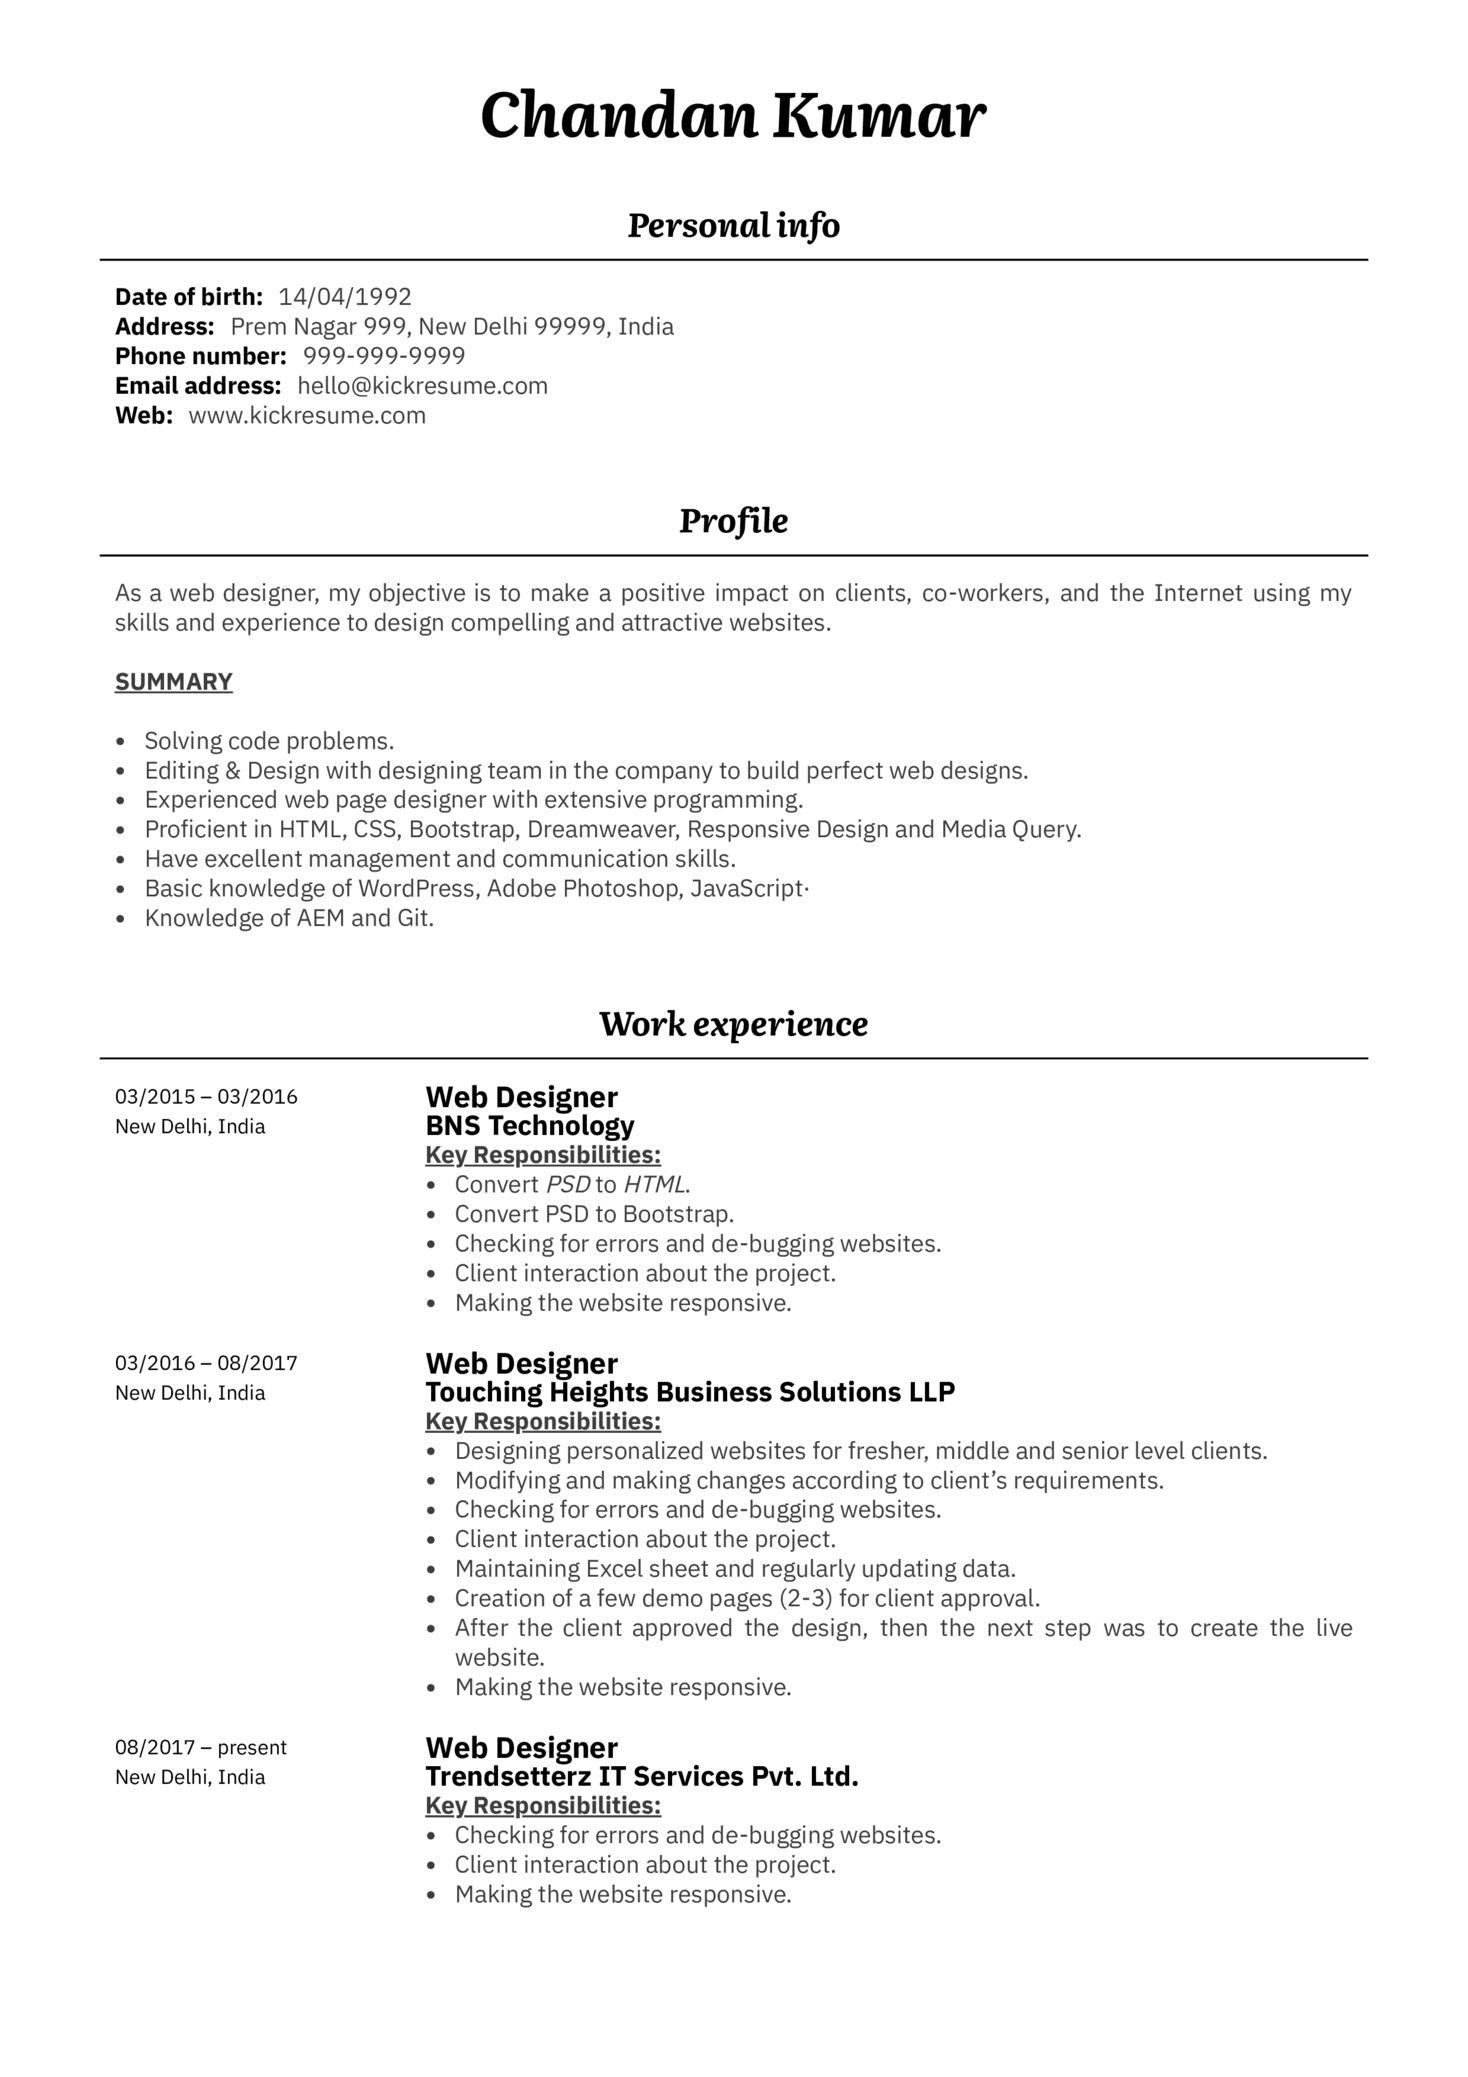 Web designer at Trendsetterz Resume example Resume samples